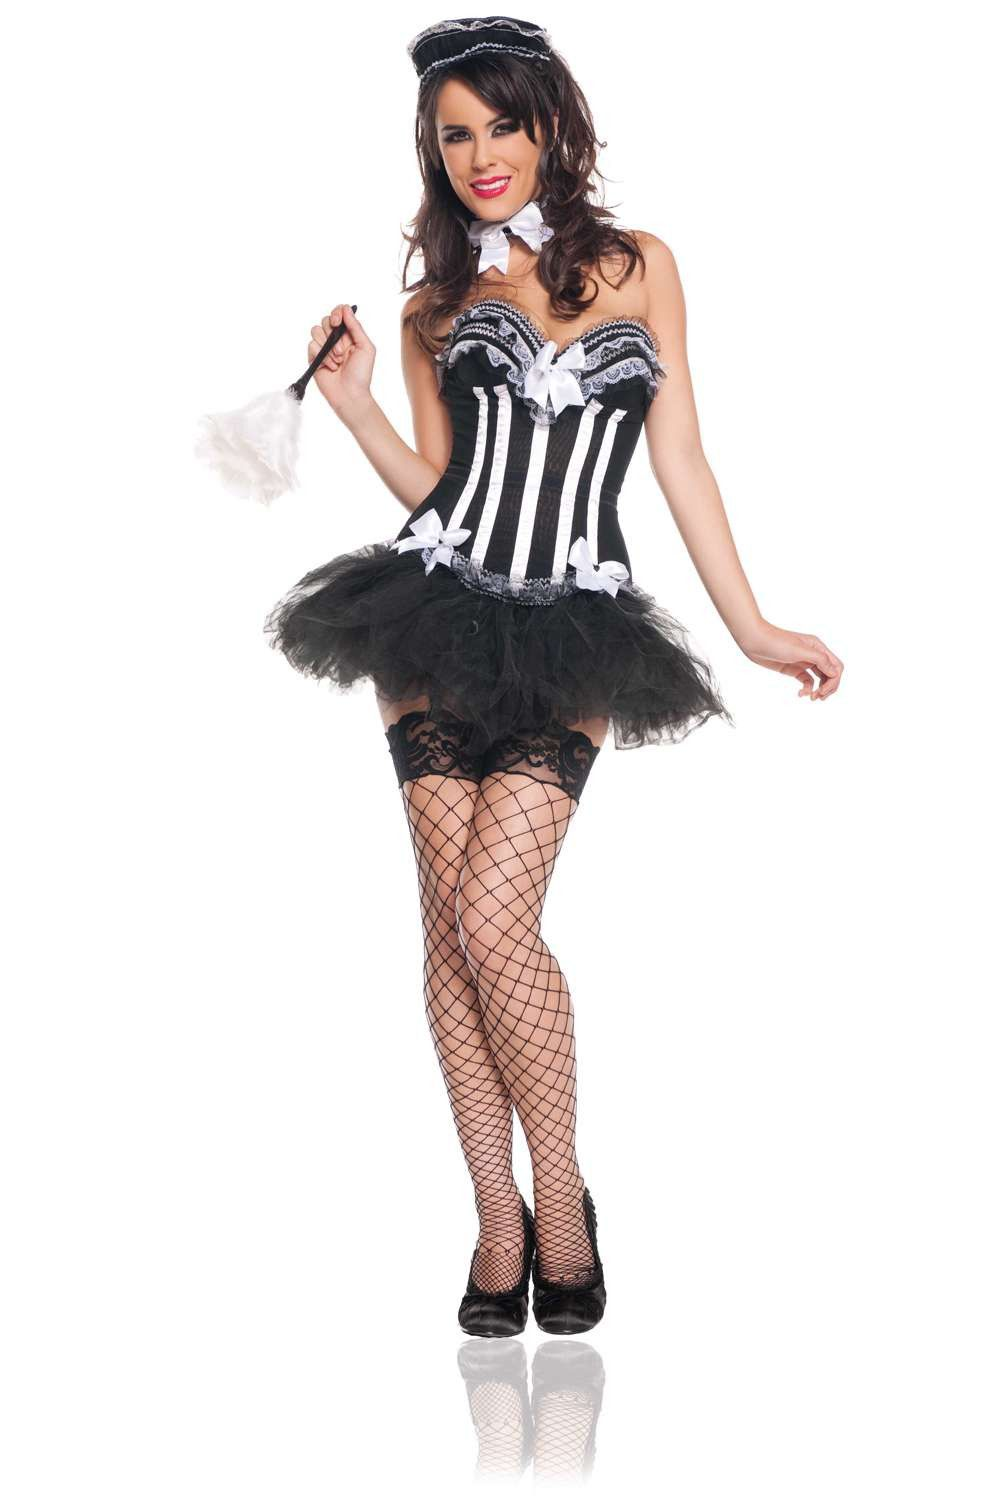 dad8ae148b1 Costume Maiden  Starline Carousel Maid BUY IT NOW ONLY   114.98